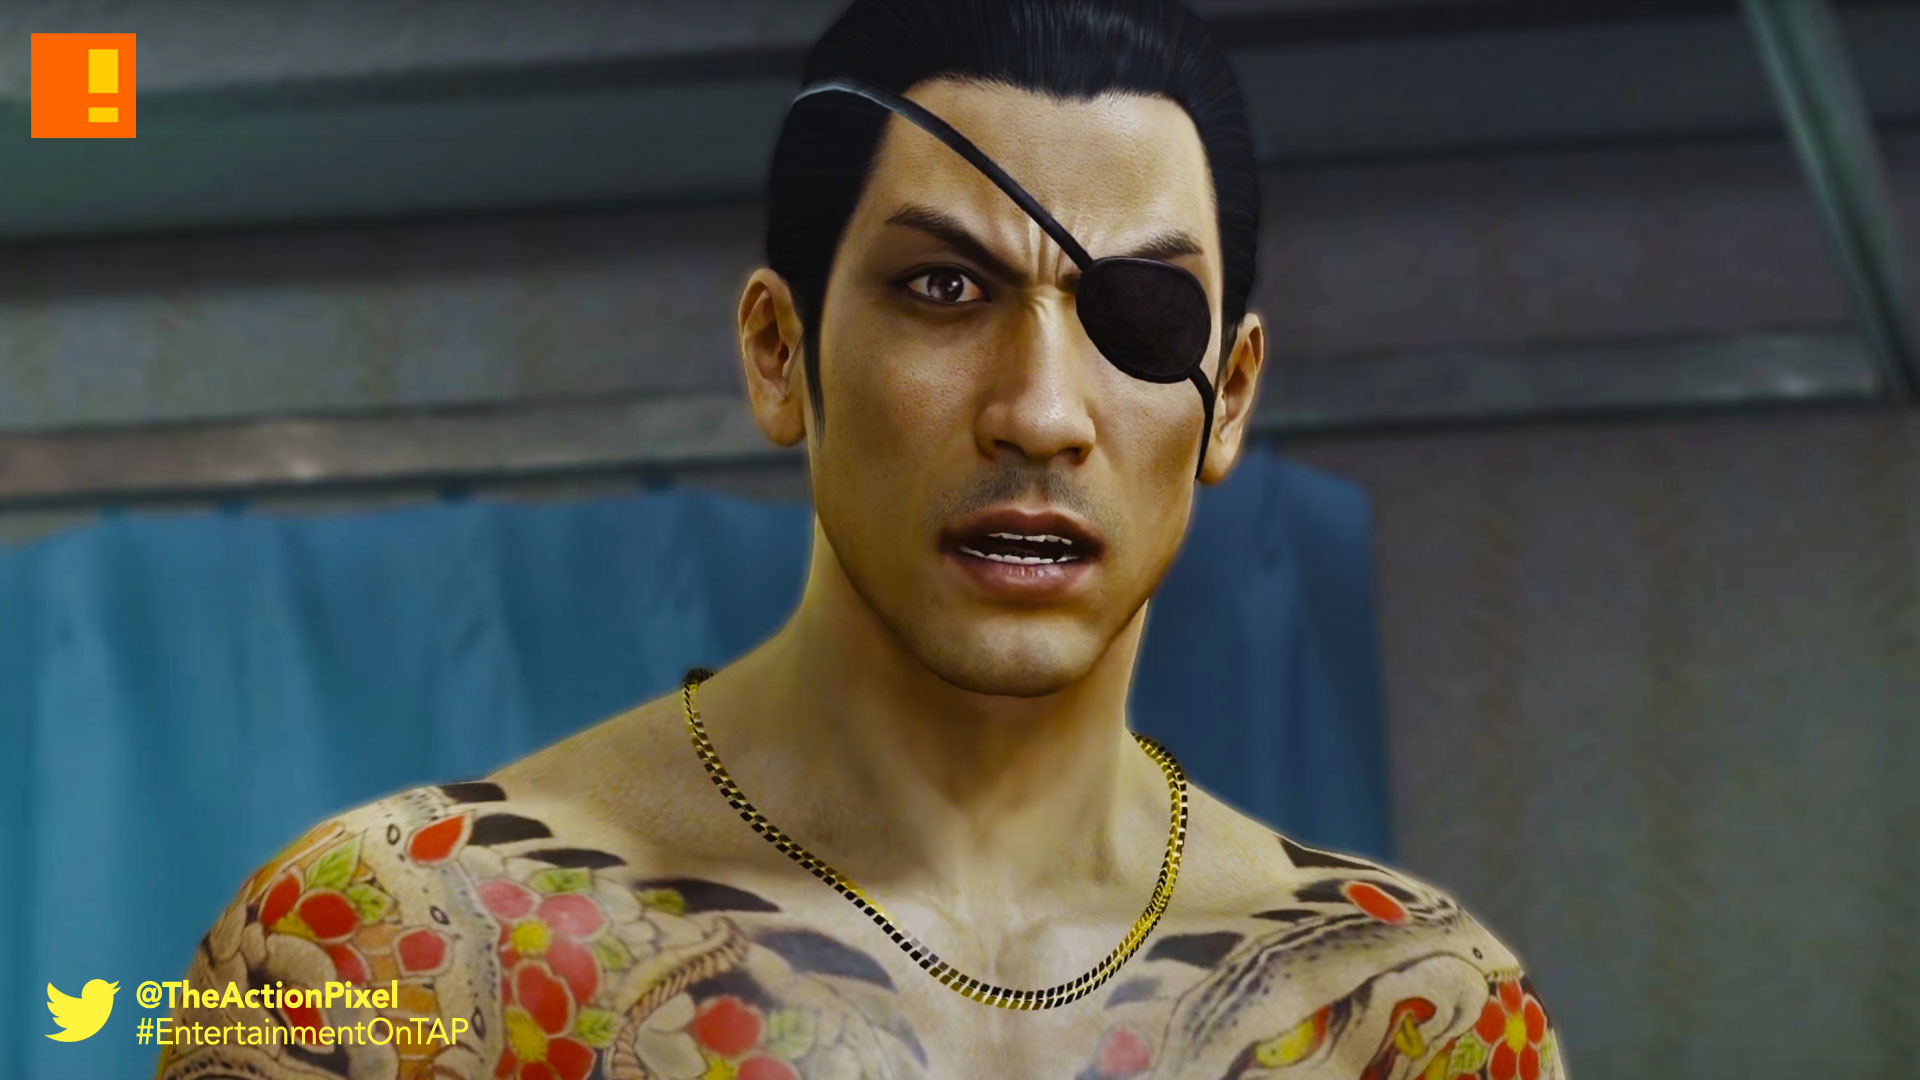 yakuza 0, majima, japan, yakuza, sega, entertainment on tap, the action pixel, #entertainmentontap